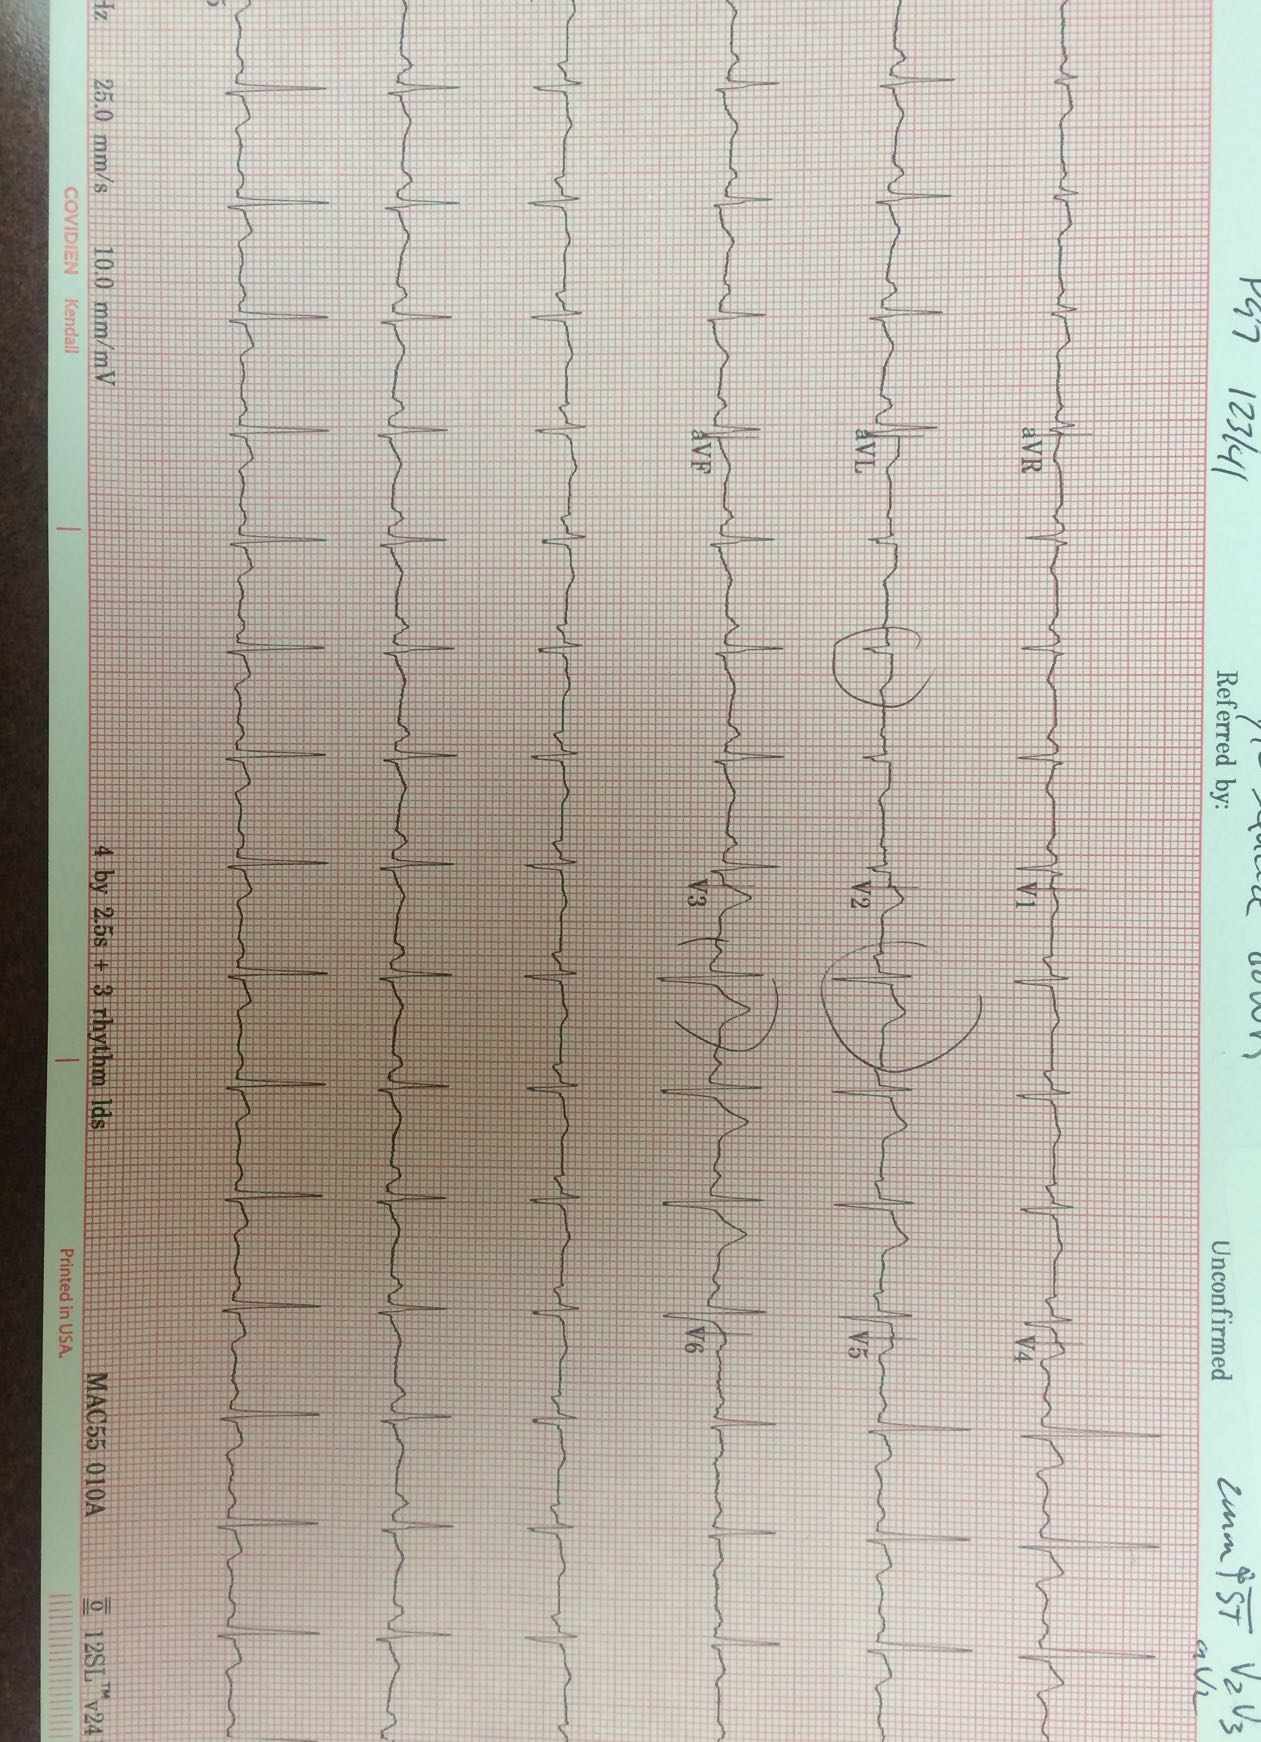 ECG in patient with elevated troponin